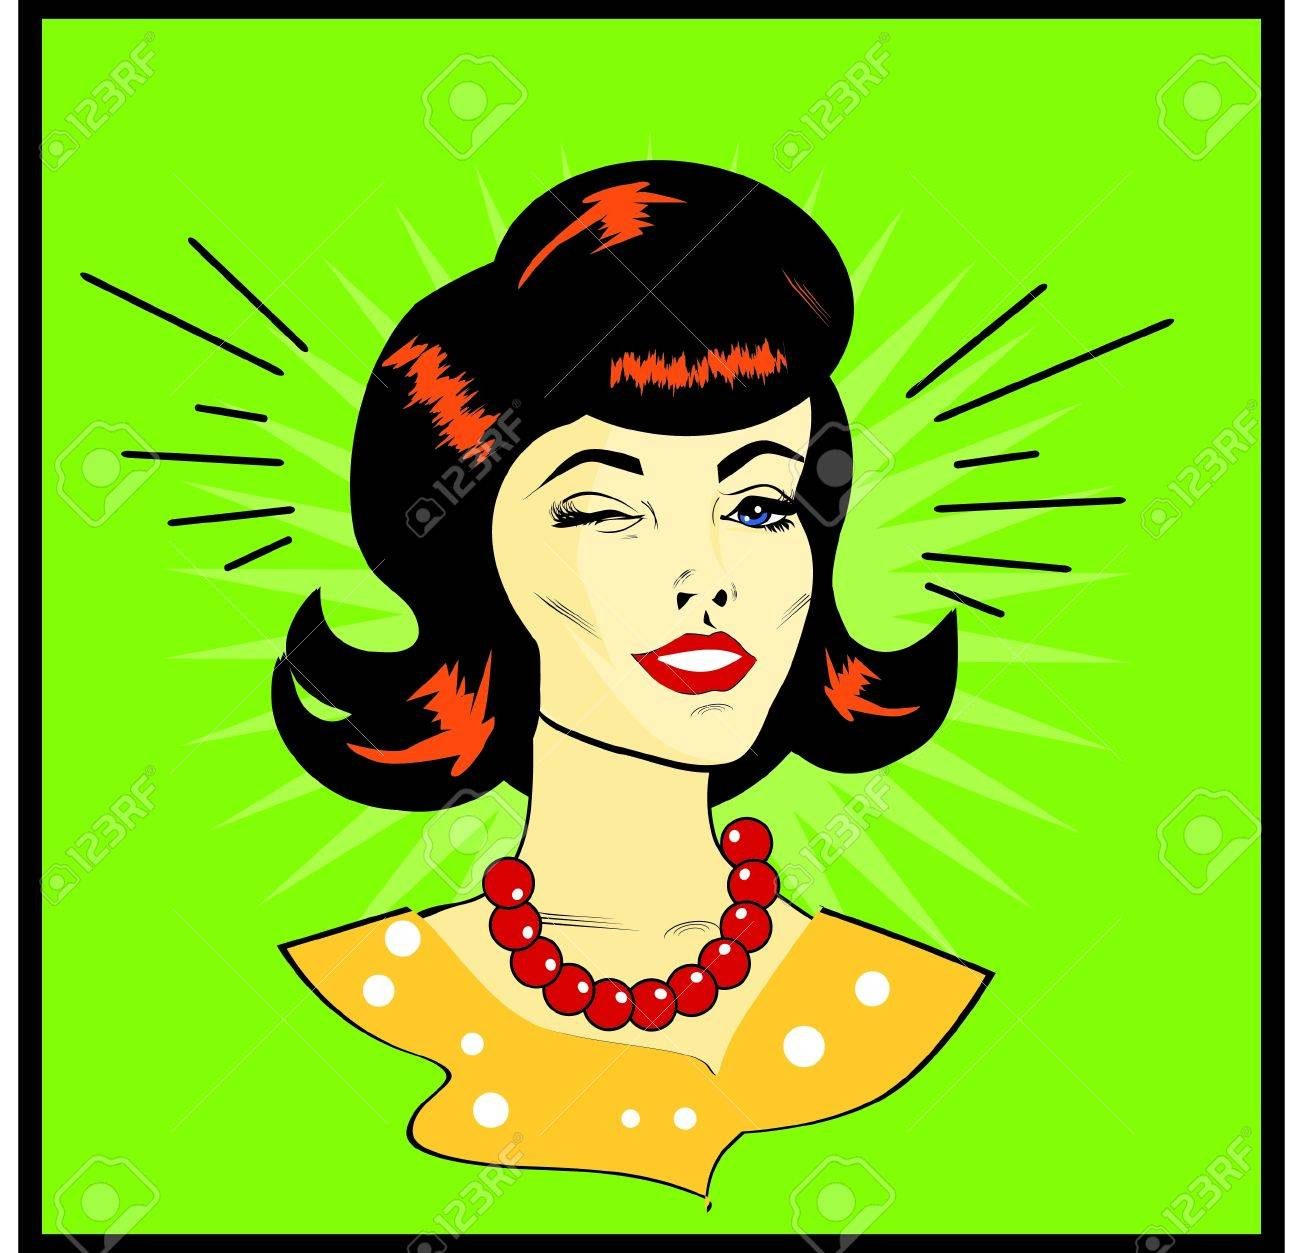 Retro Woman Winking - Retro Clip Art Stock Vector - 15770882